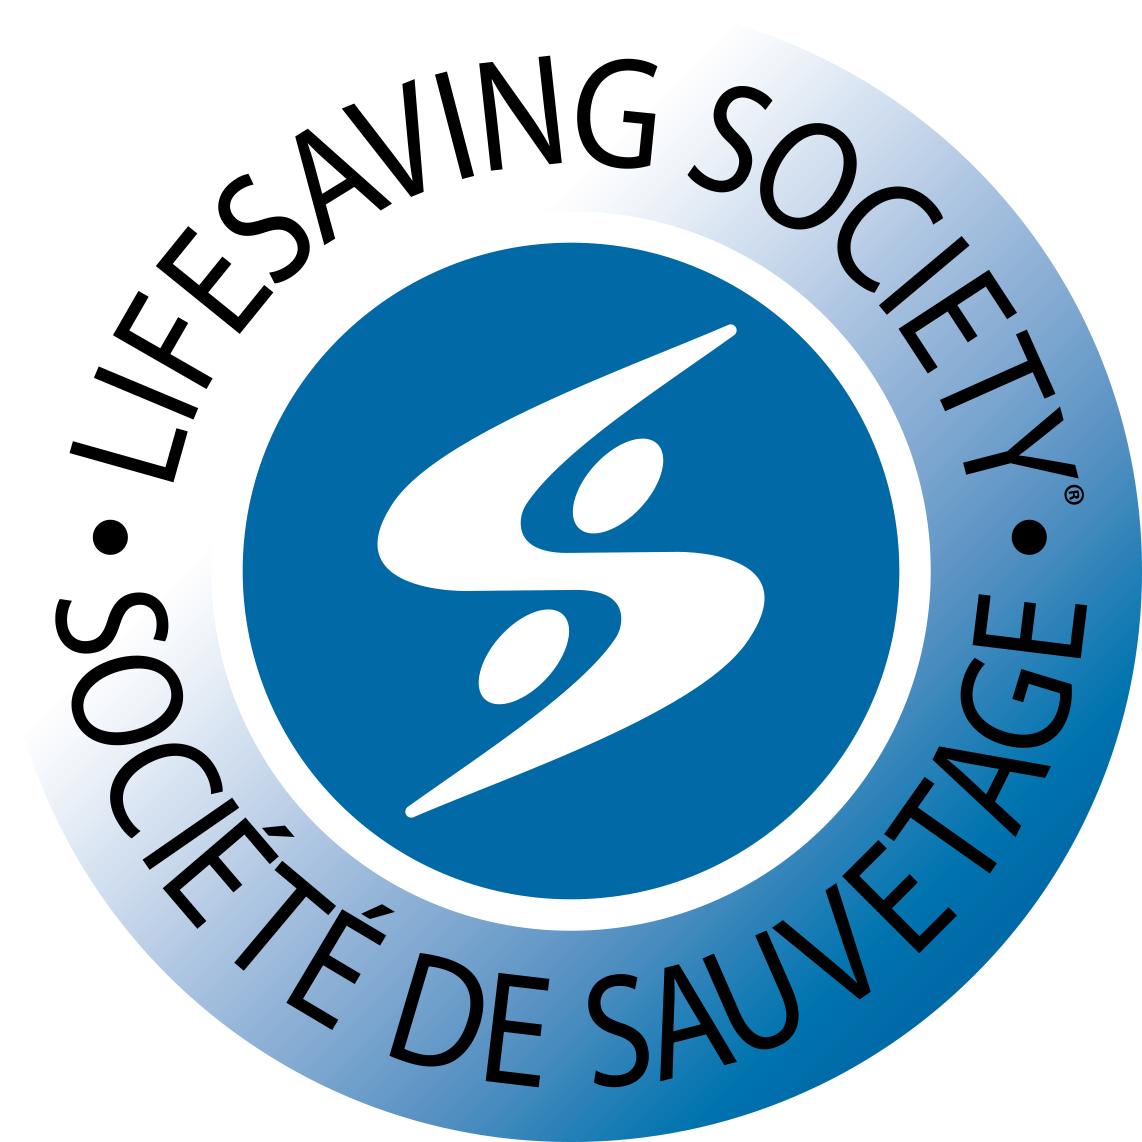 Lifesaving Society Round Logo Png